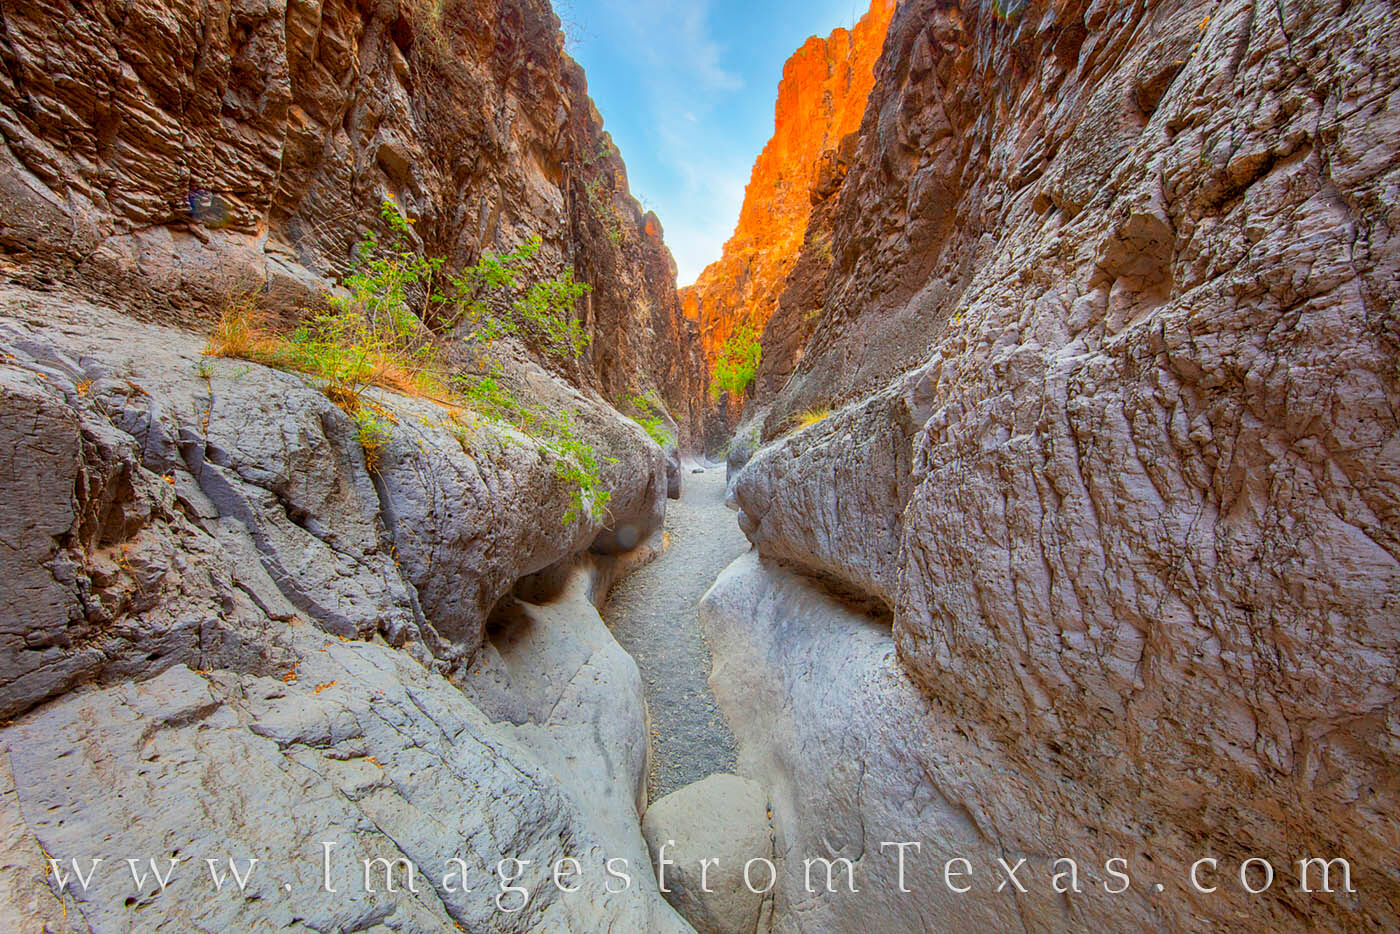 closed canyon, big bend ranch, slot canyons, texas slot canyons, rio grande, FM 170, hiking, hiking texas, exploring, photo